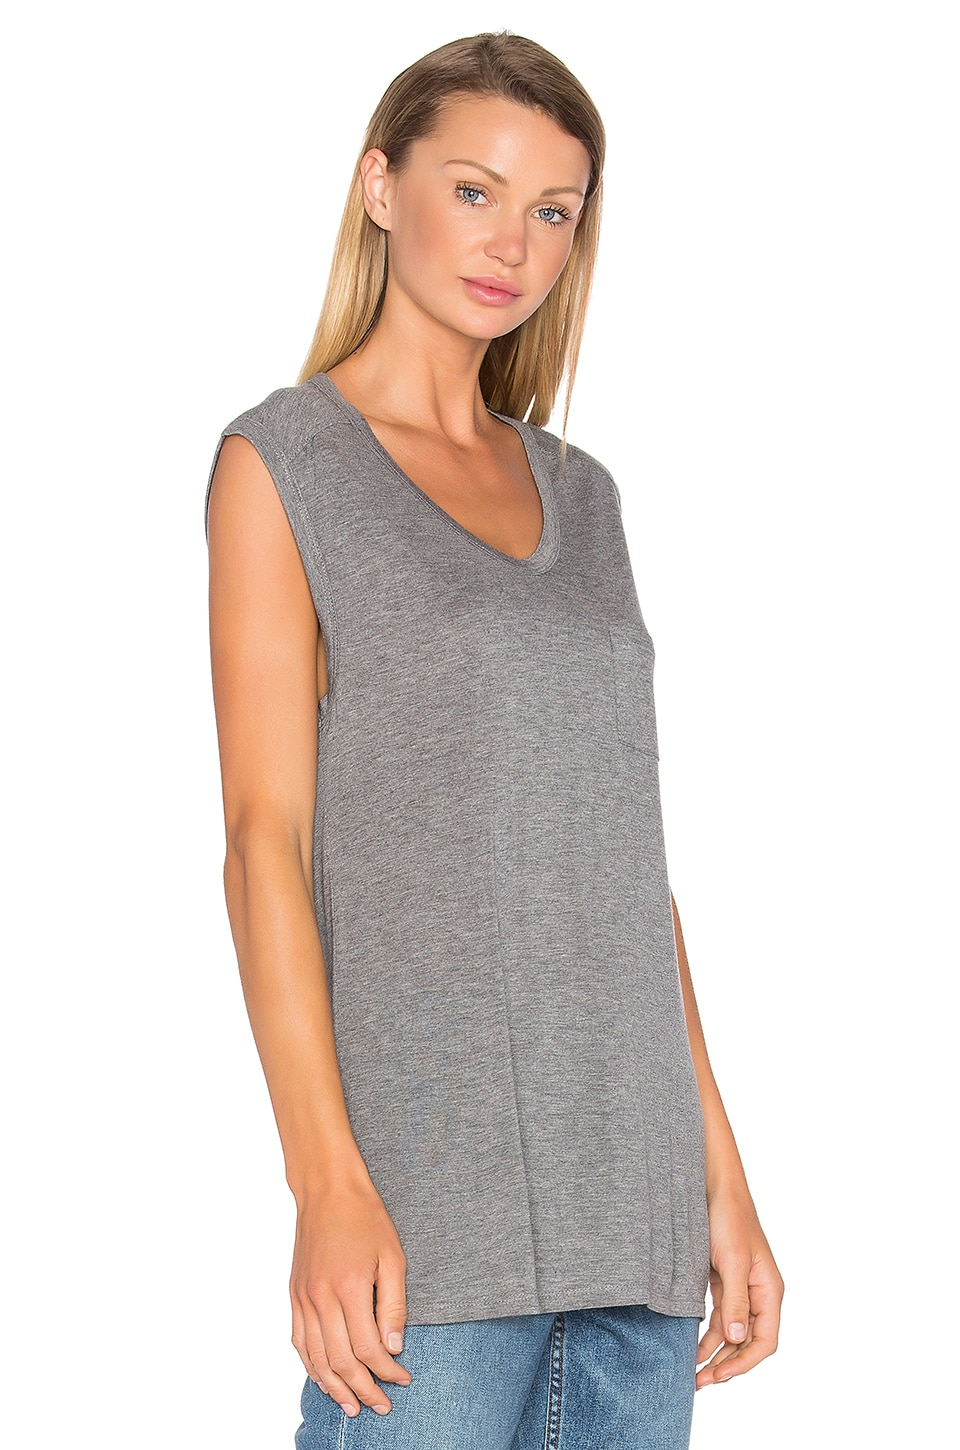 T by Alexander Wang Classic Muscle T in Heather Grey